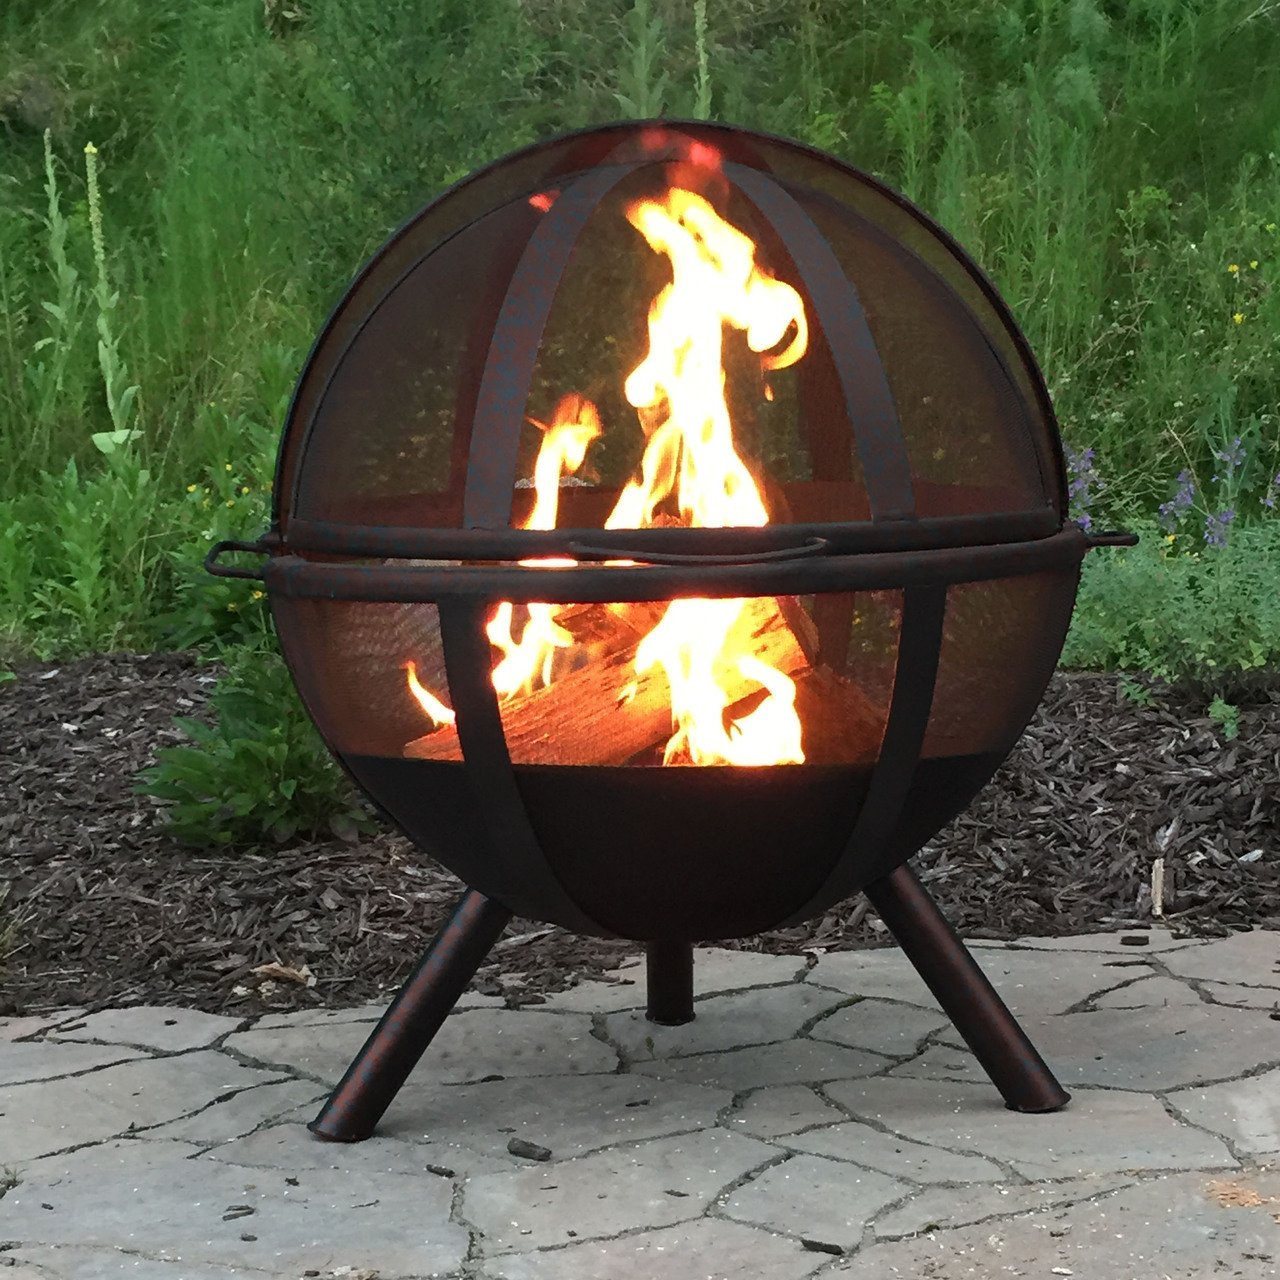 Amazon.com : Sunnydaze 30 Inch Sphere Sienna Flaming Ball Fire Pit with  Protective Cover : Garden & Outdoor - Amazon.com : Sunnydaze 30 Inch Sphere Sienna Flaming Ball Fire Pit